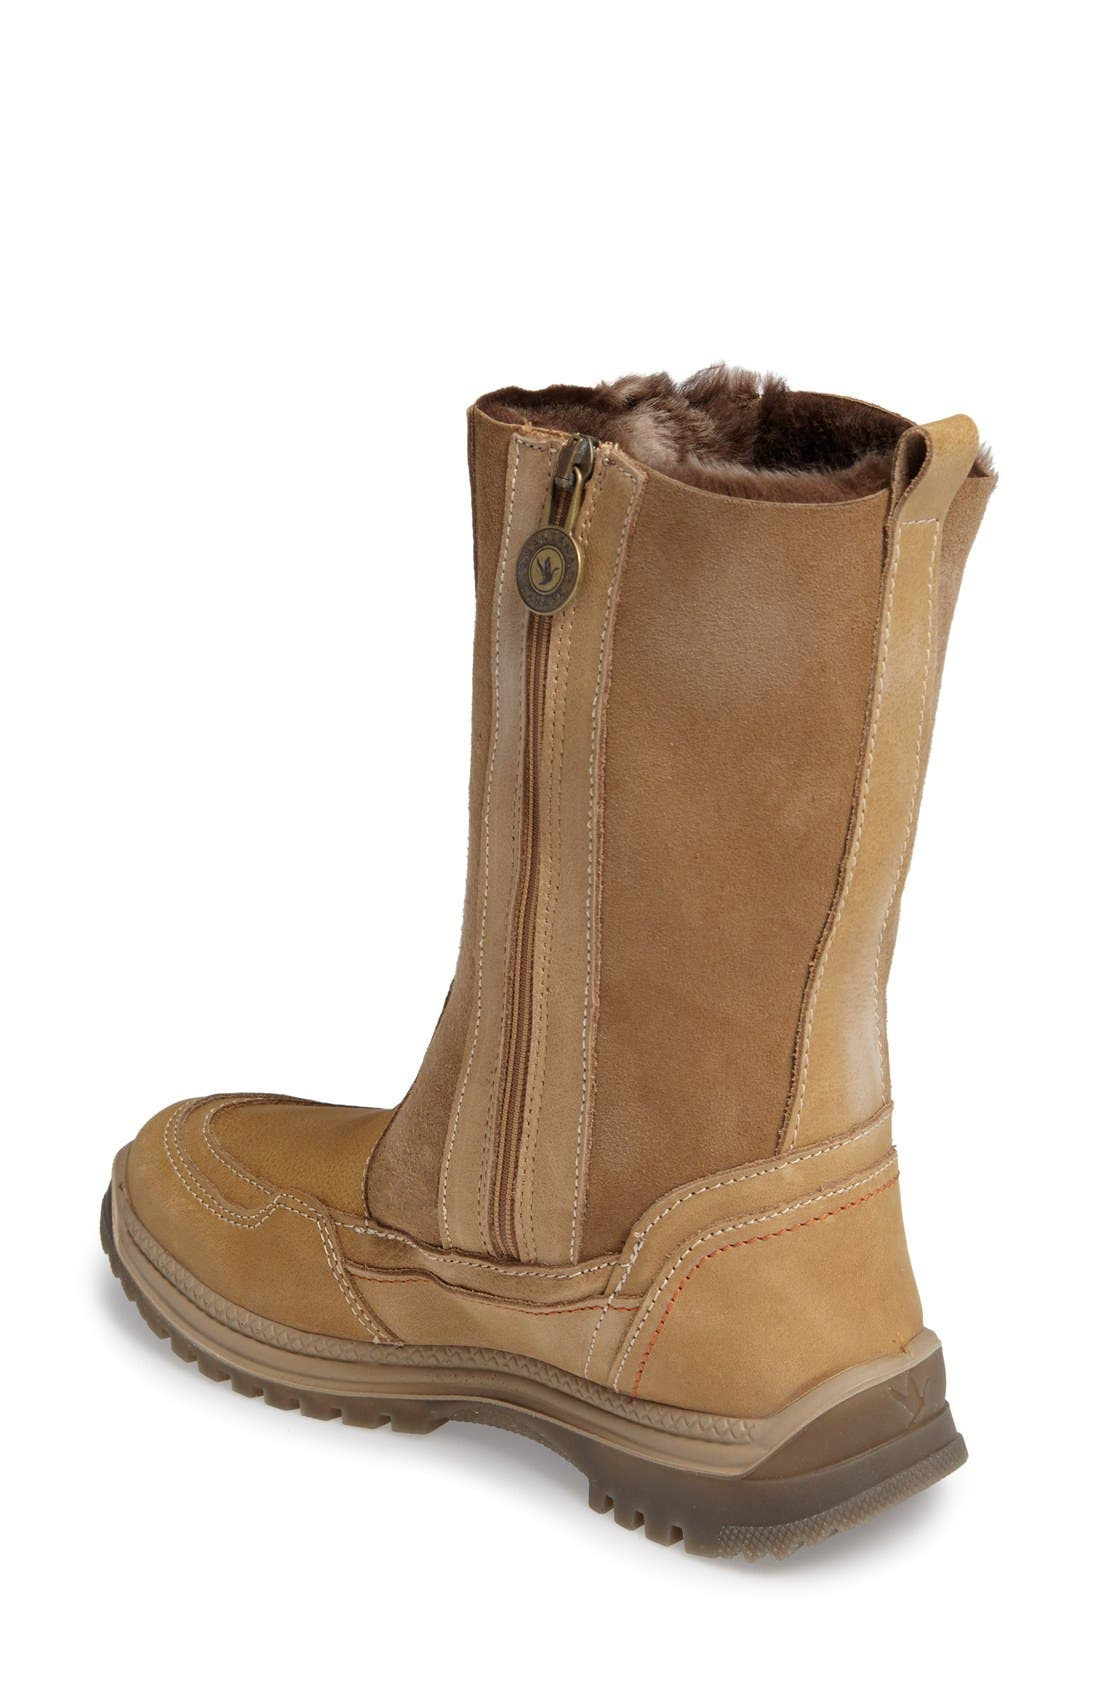 Seraphine Genuine Shearling Waterproof Winter Boot,                             Alternate thumbnail 2, color,                             Camel Leather